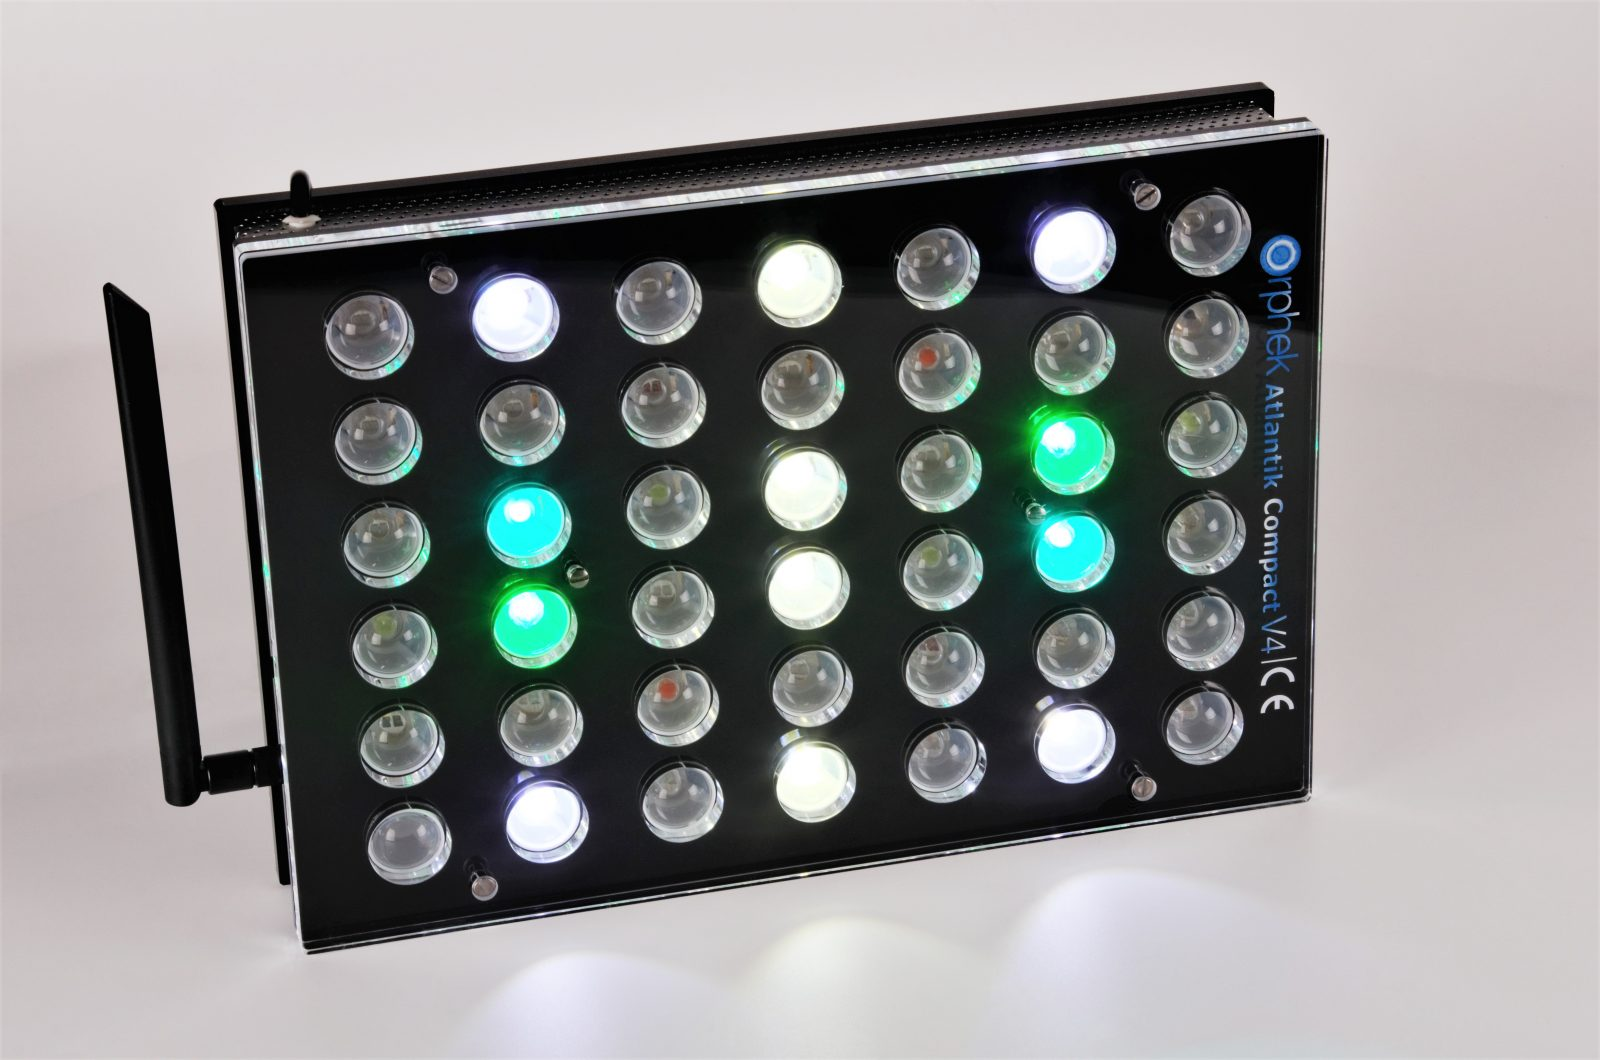 Orphek-Aquarium-LED-Lighting-Atlantik-کمپیکٹ- V4-روشنی- چینل 1